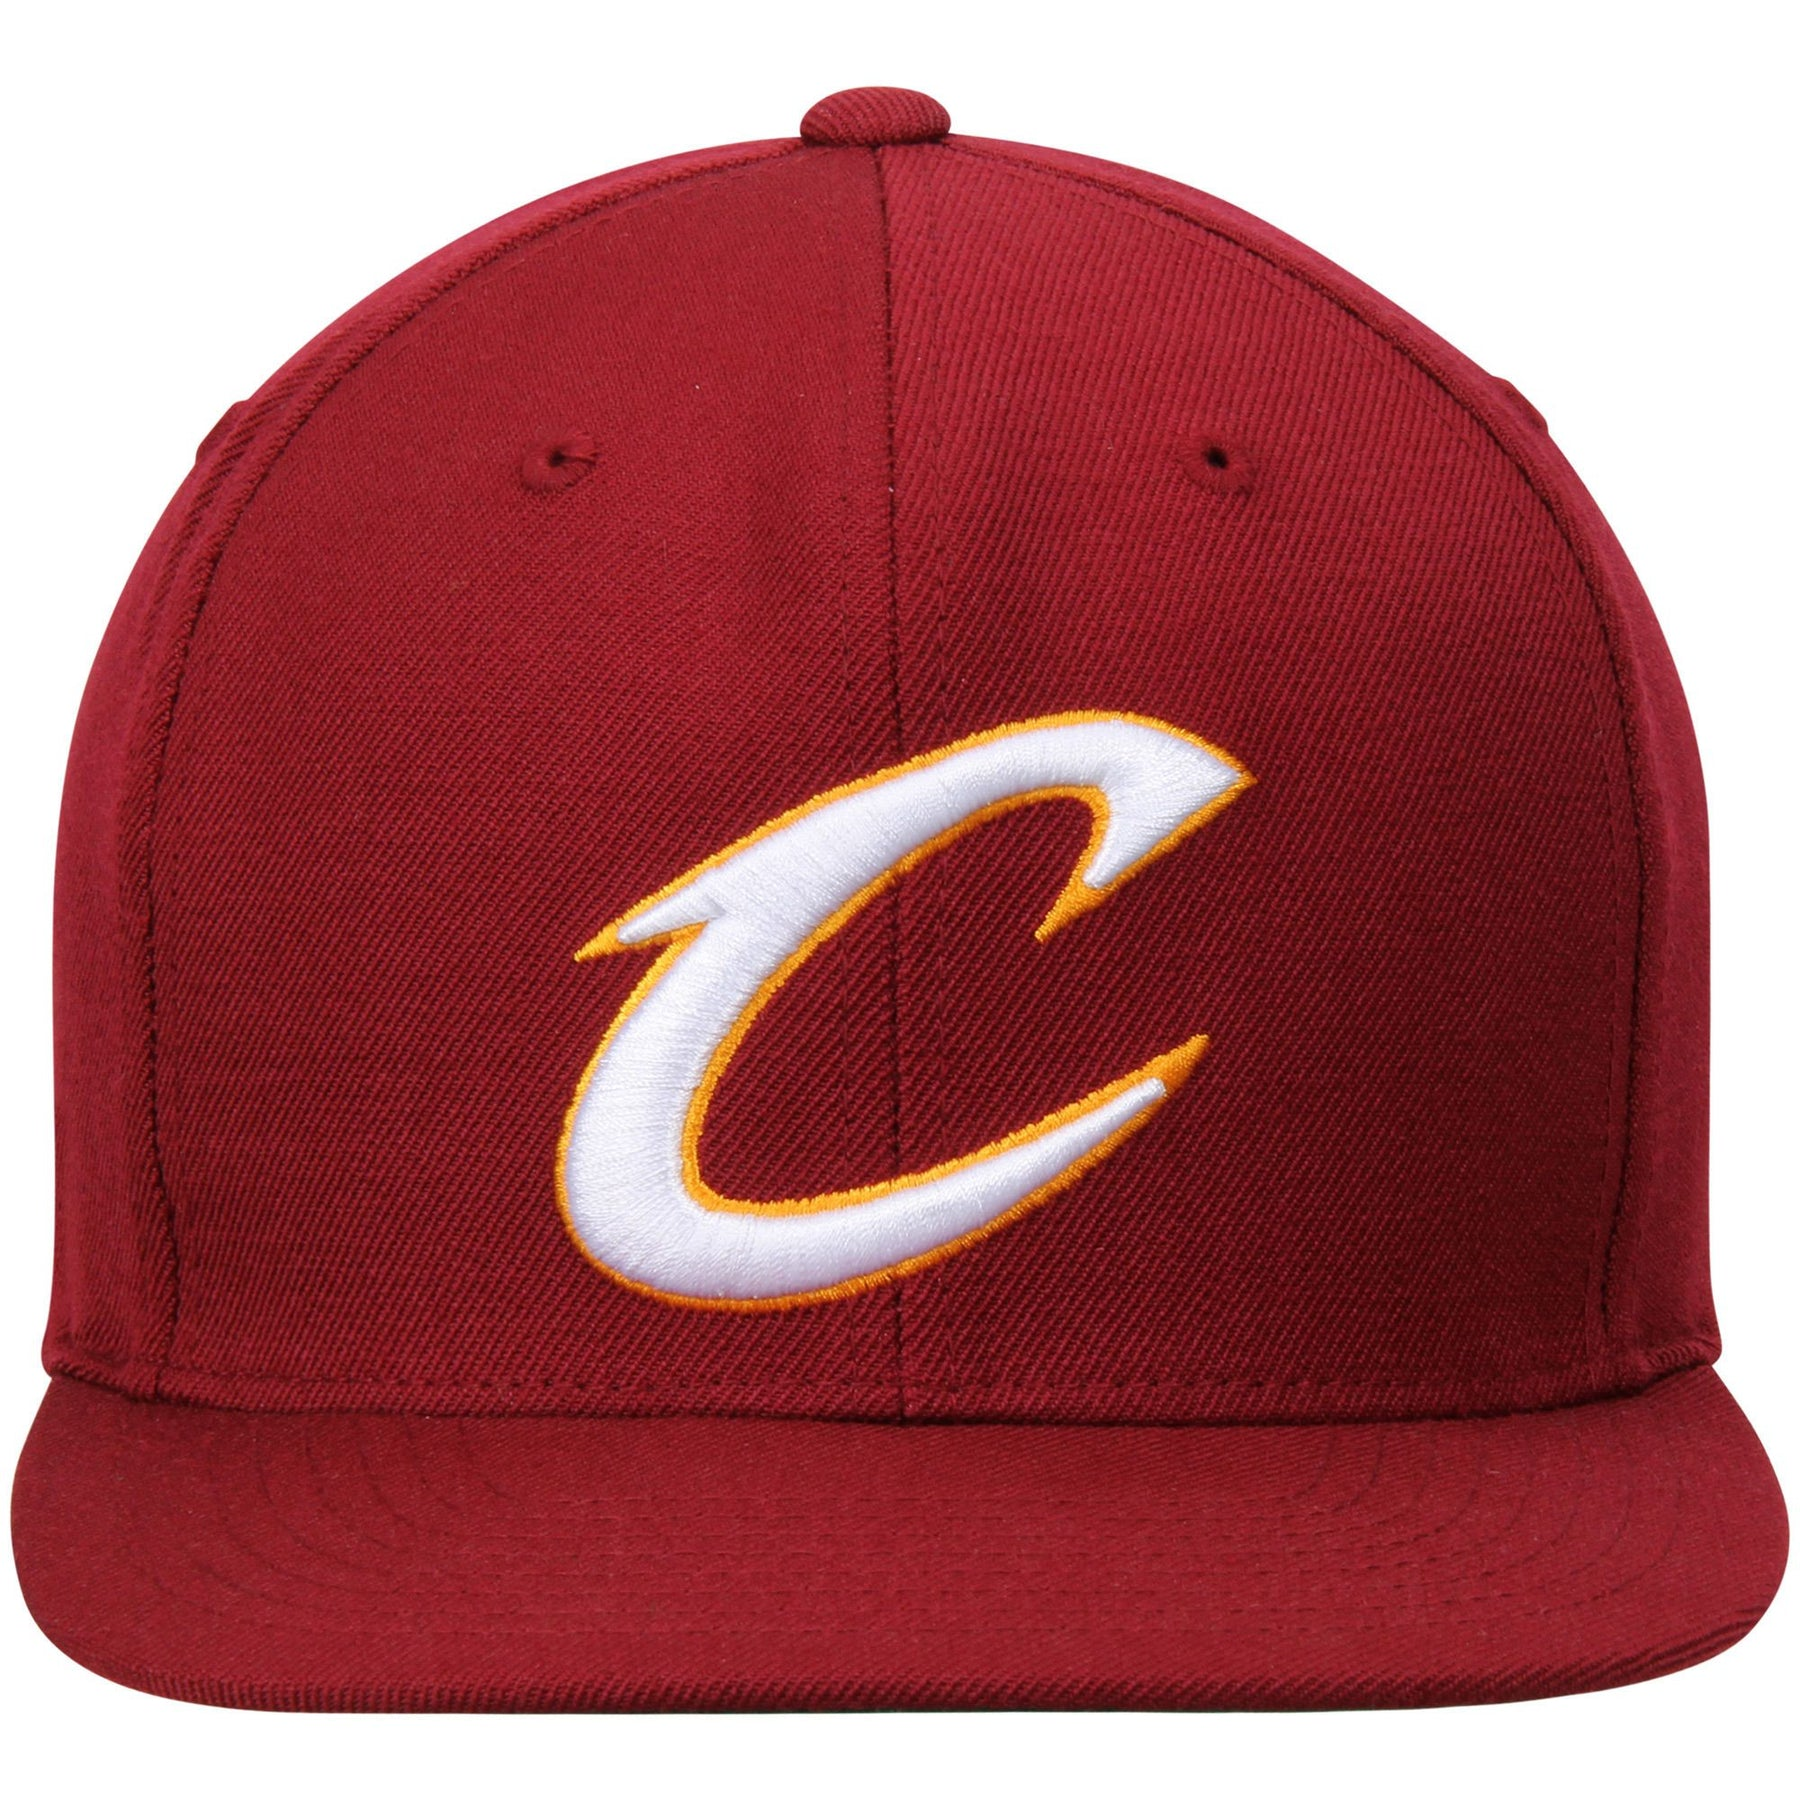 61ccd42cb0e on the front of the classic Cleveland Cavaliers snapback hat is the Cleveland  Cavaliers C logo